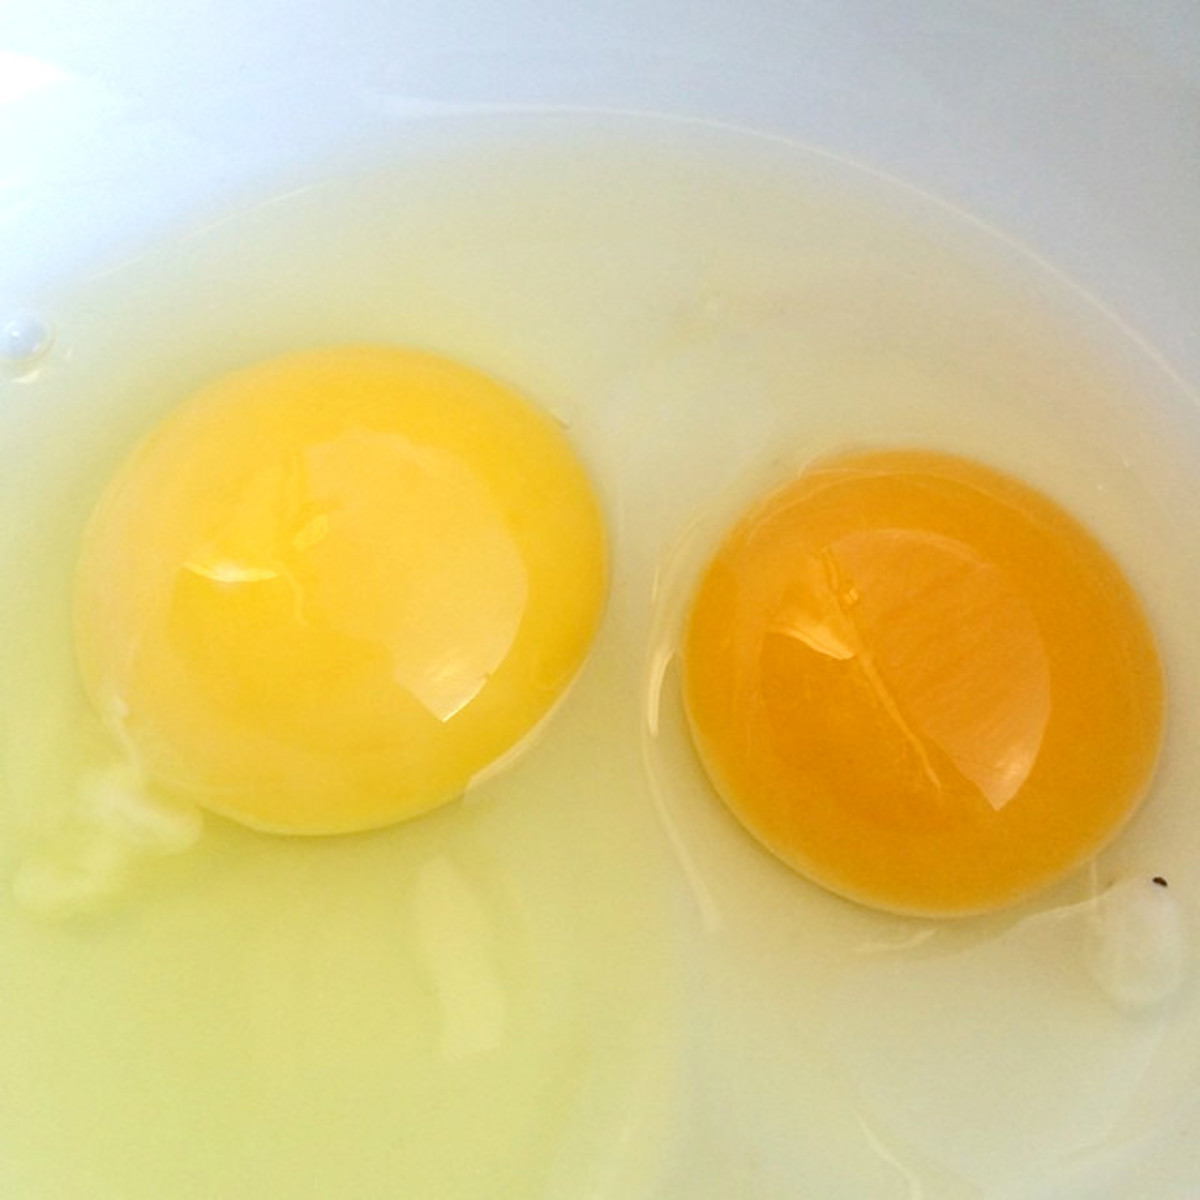 Caged egg yolk (left) vs. free-range egg yolk color (right).